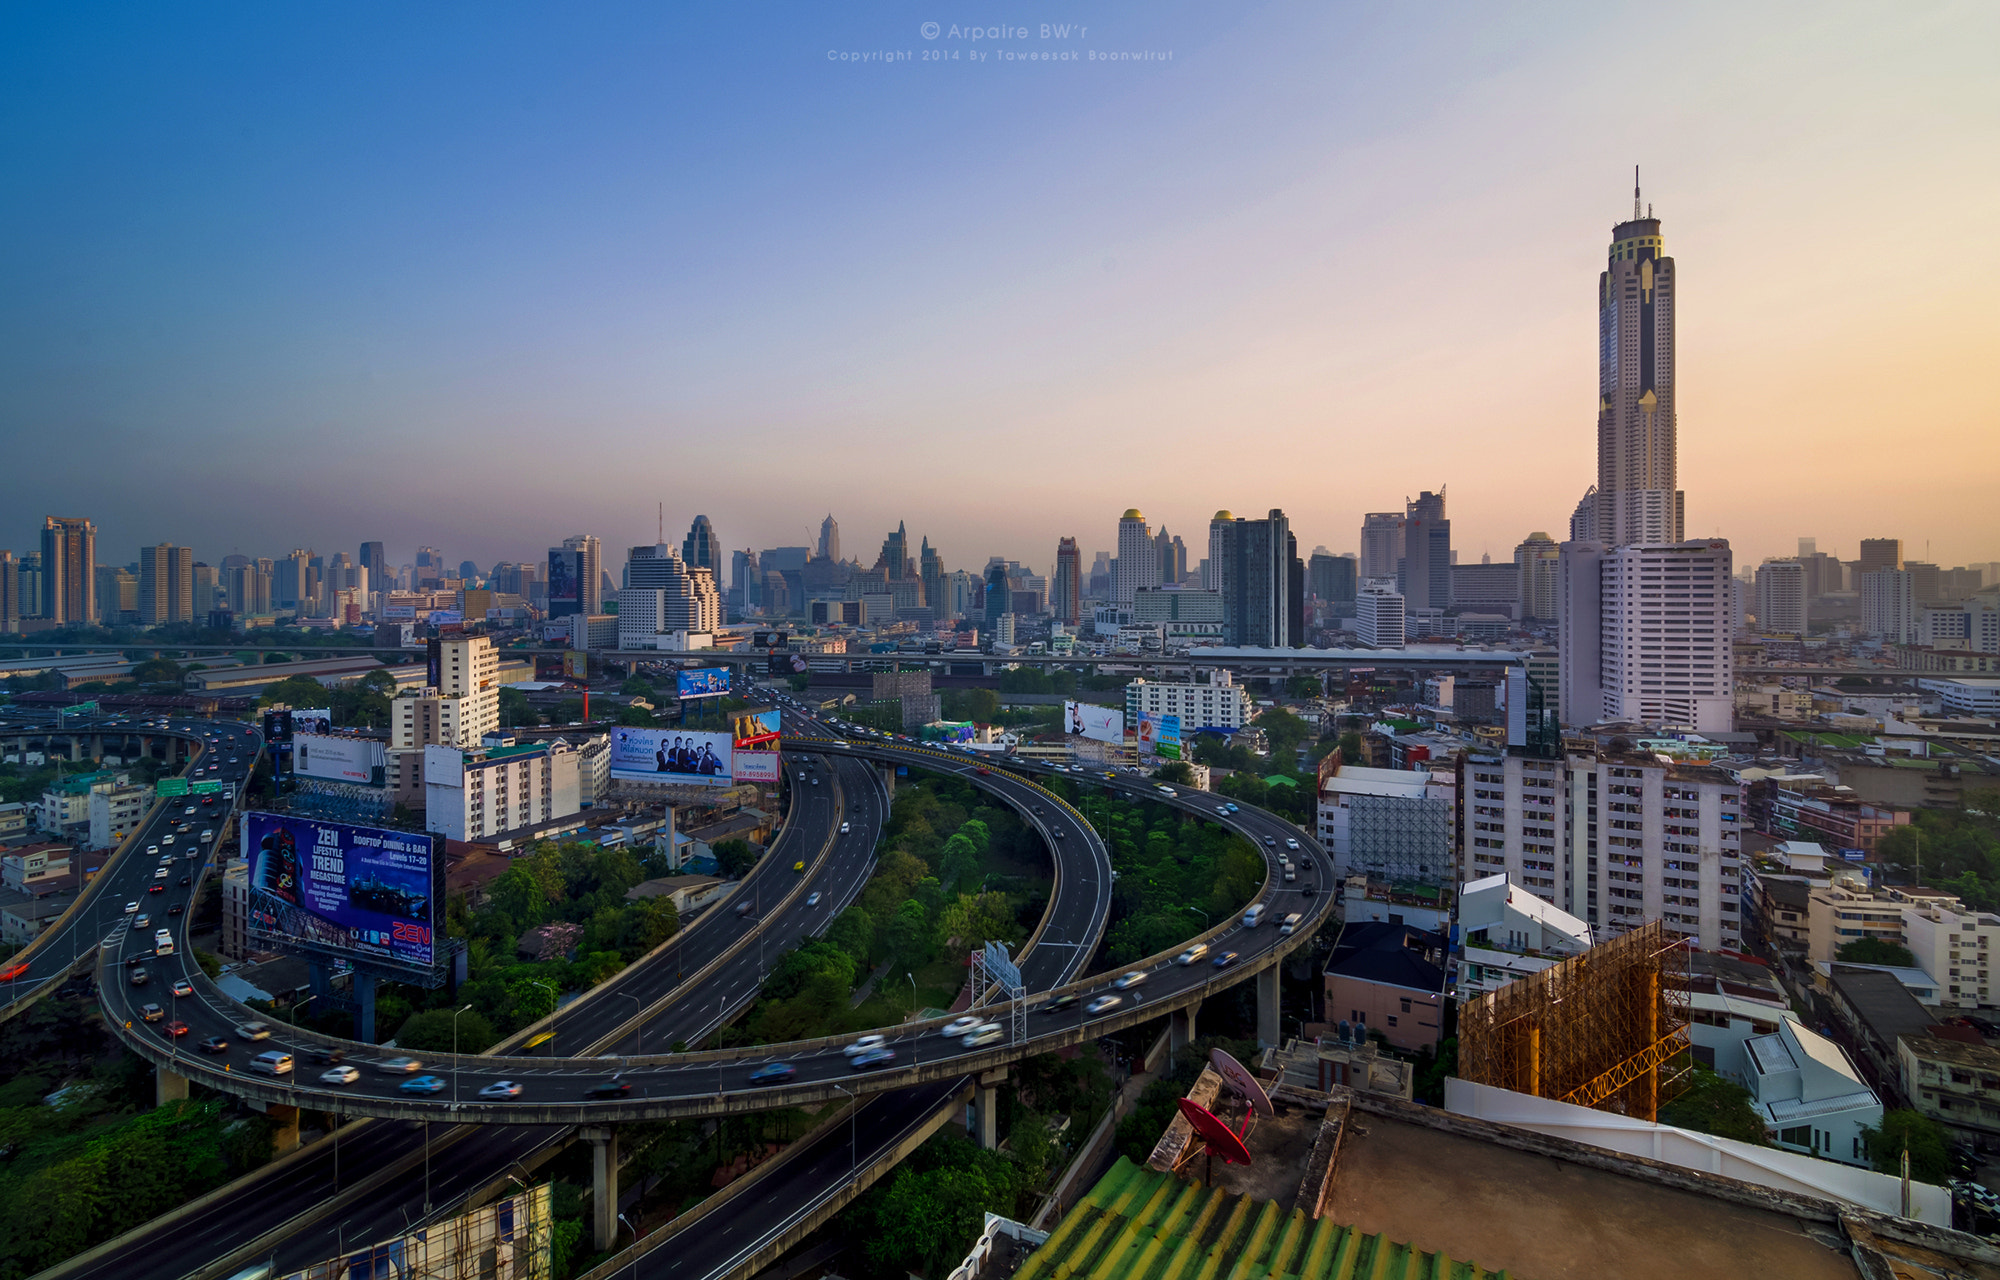 Photograph Cityscape Of Highway In Downtown Of Bangkok City (จตุรทิศ) by Taweesak Boonwirut on 500px